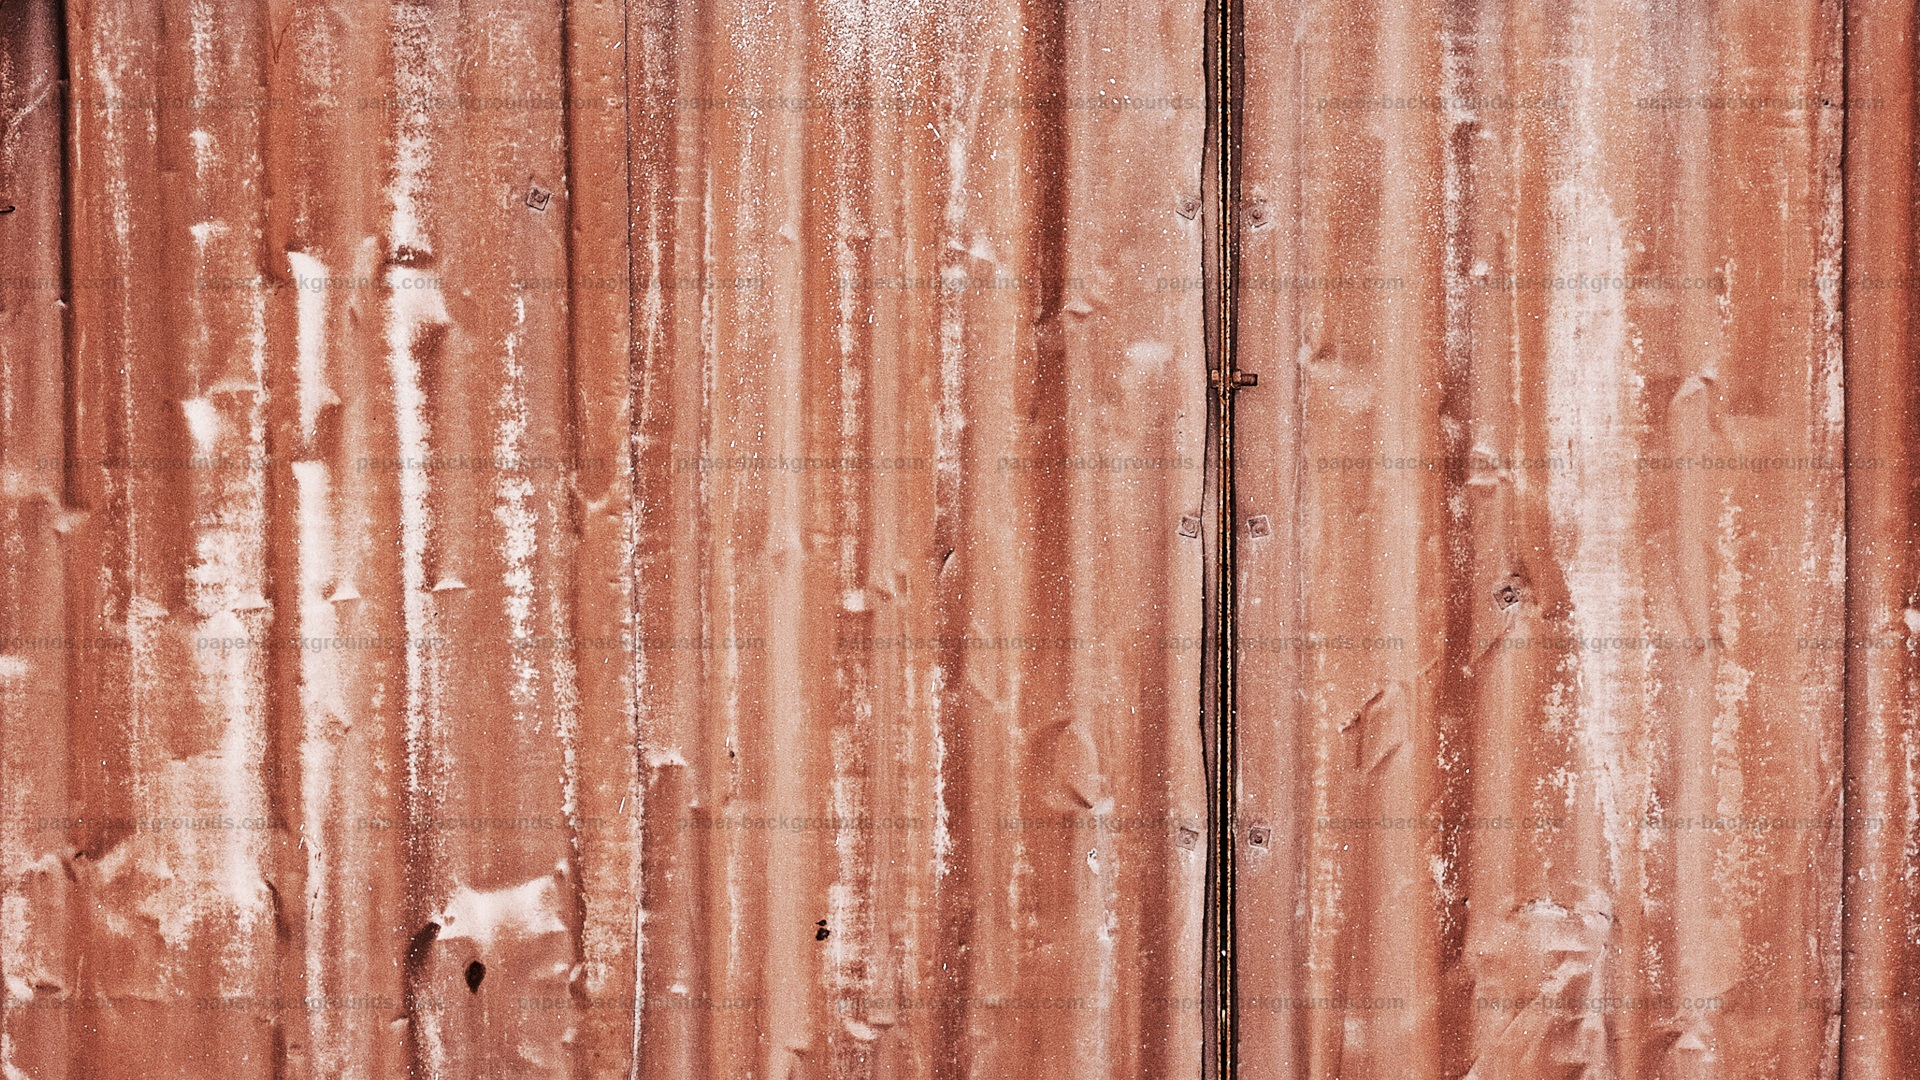 Grunge Metal Panels Texture HD